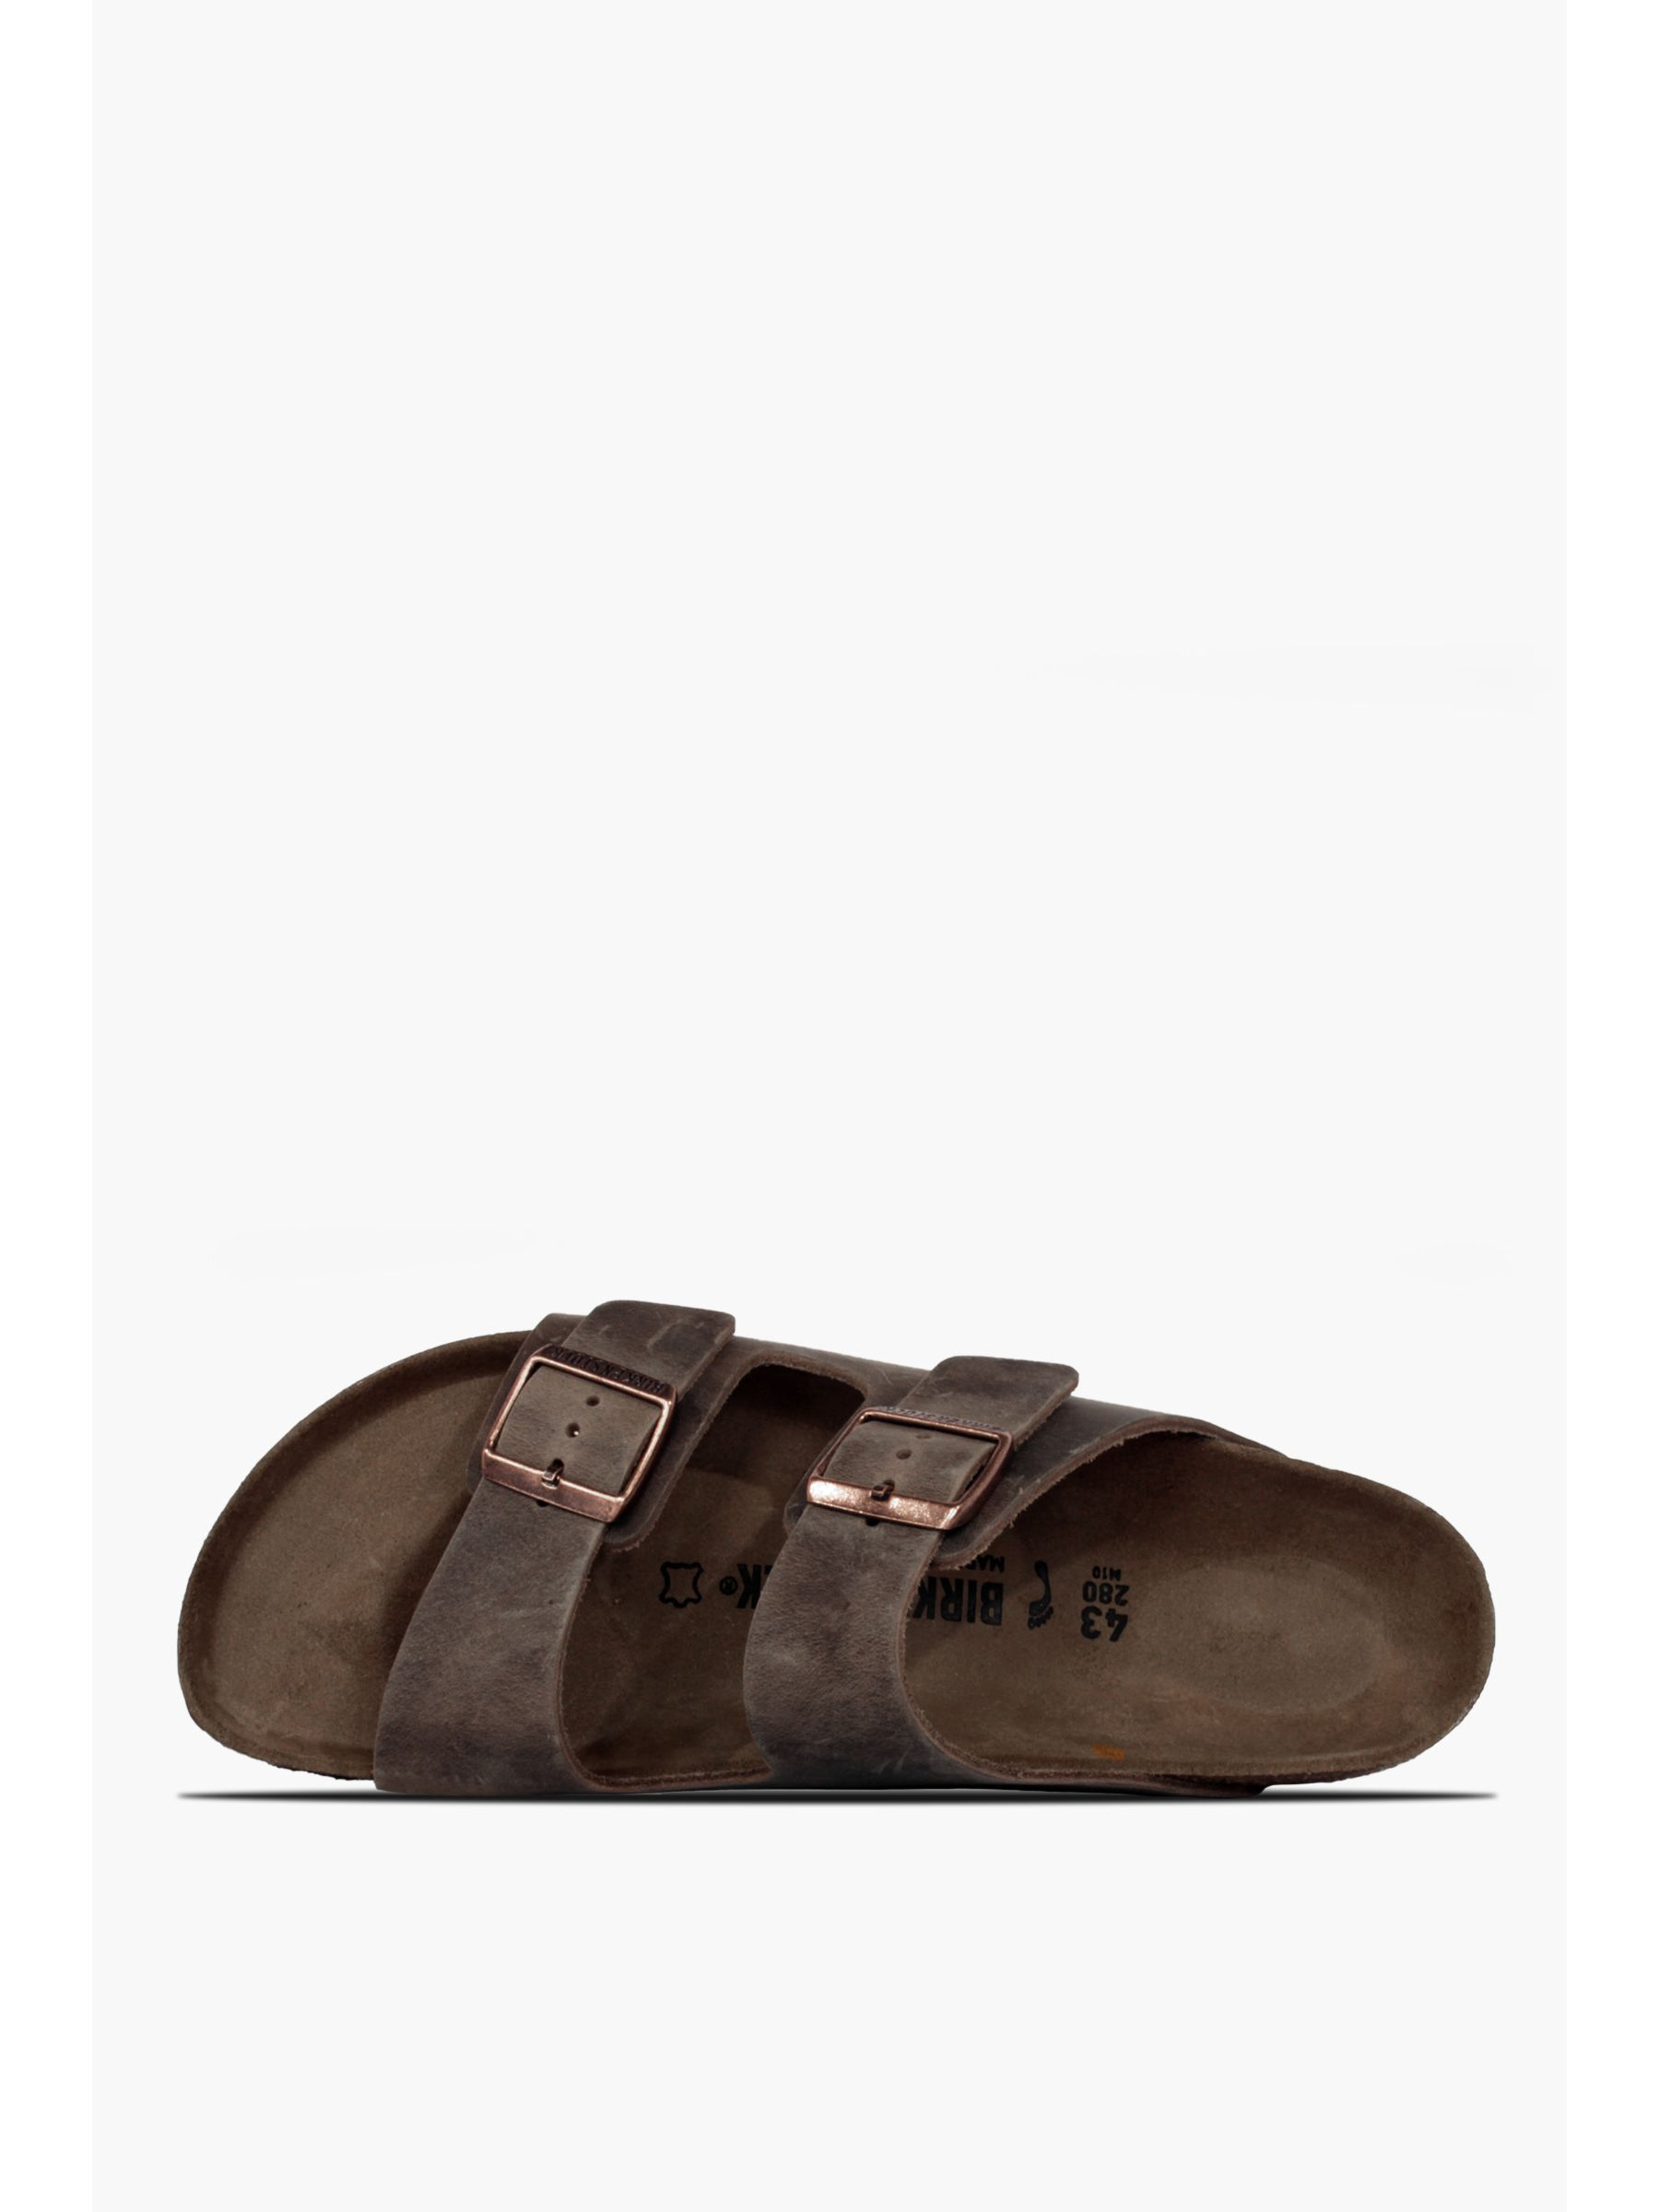 111022465_birkenstock_arizona_tabacco_brown_d.jpg